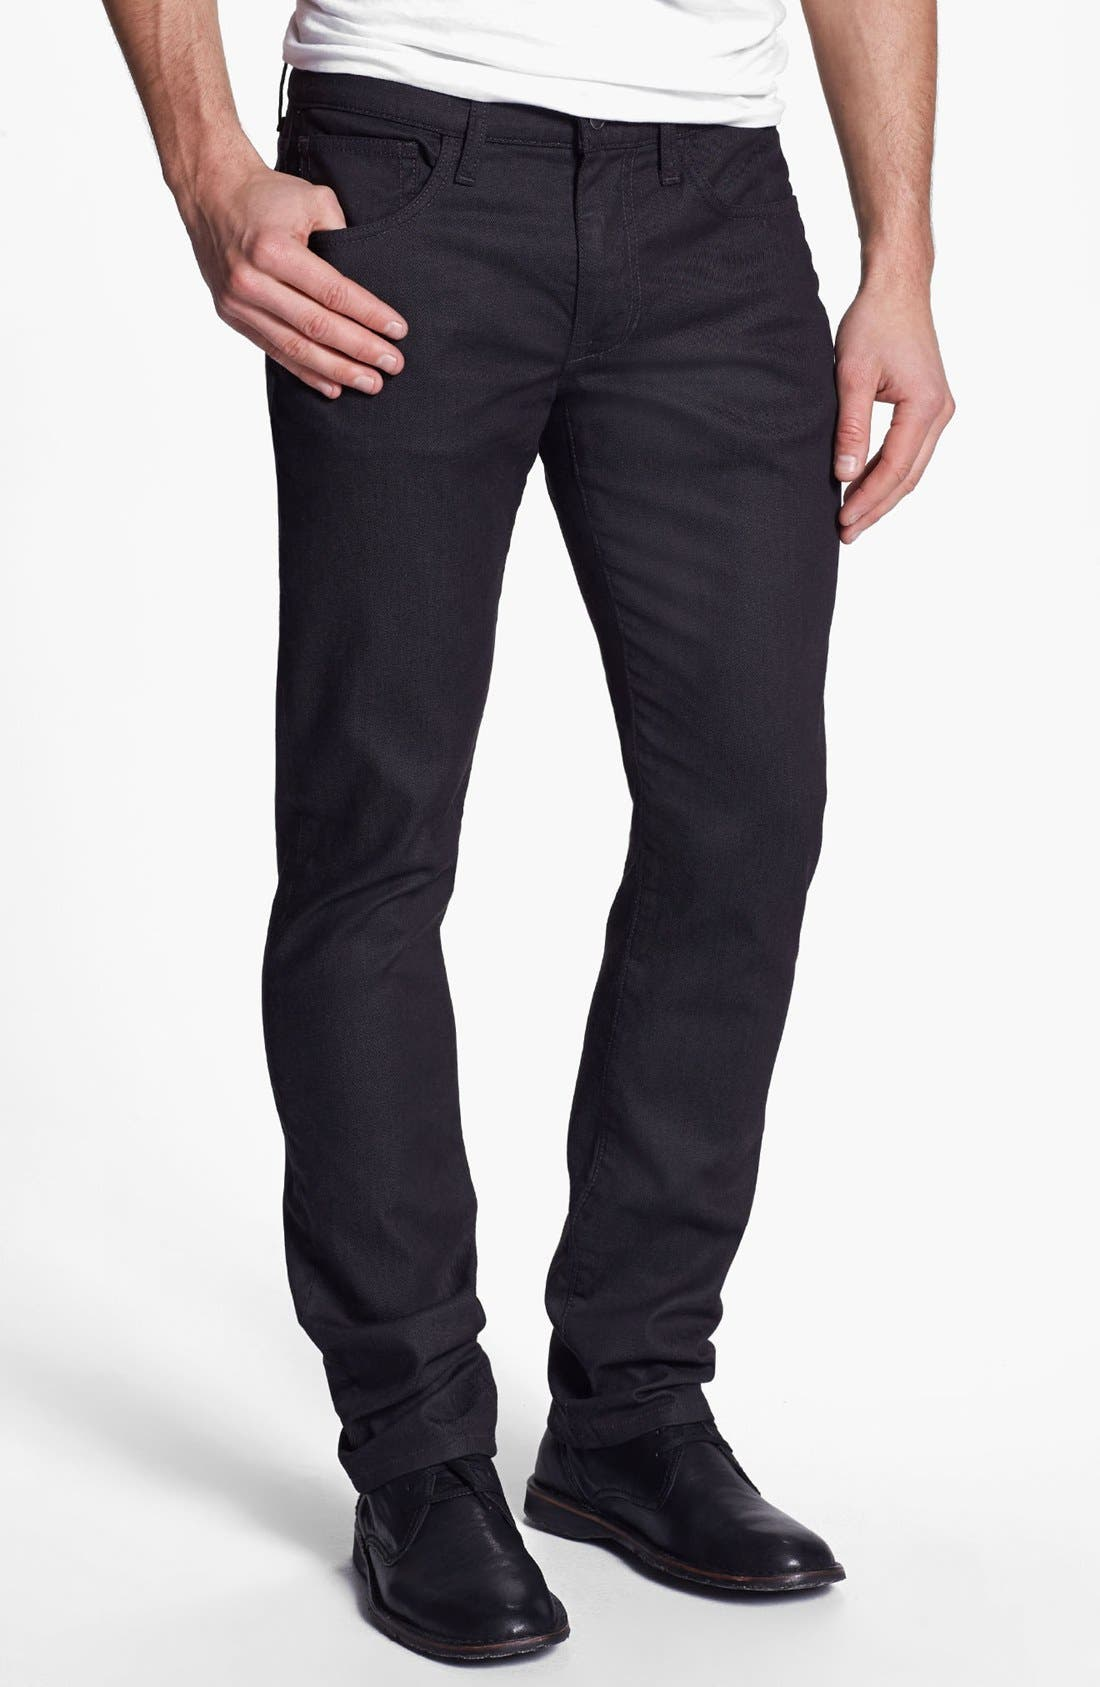 Main Image - Joe's 'Slim' Skinny Fit Jeans (Wilkes)